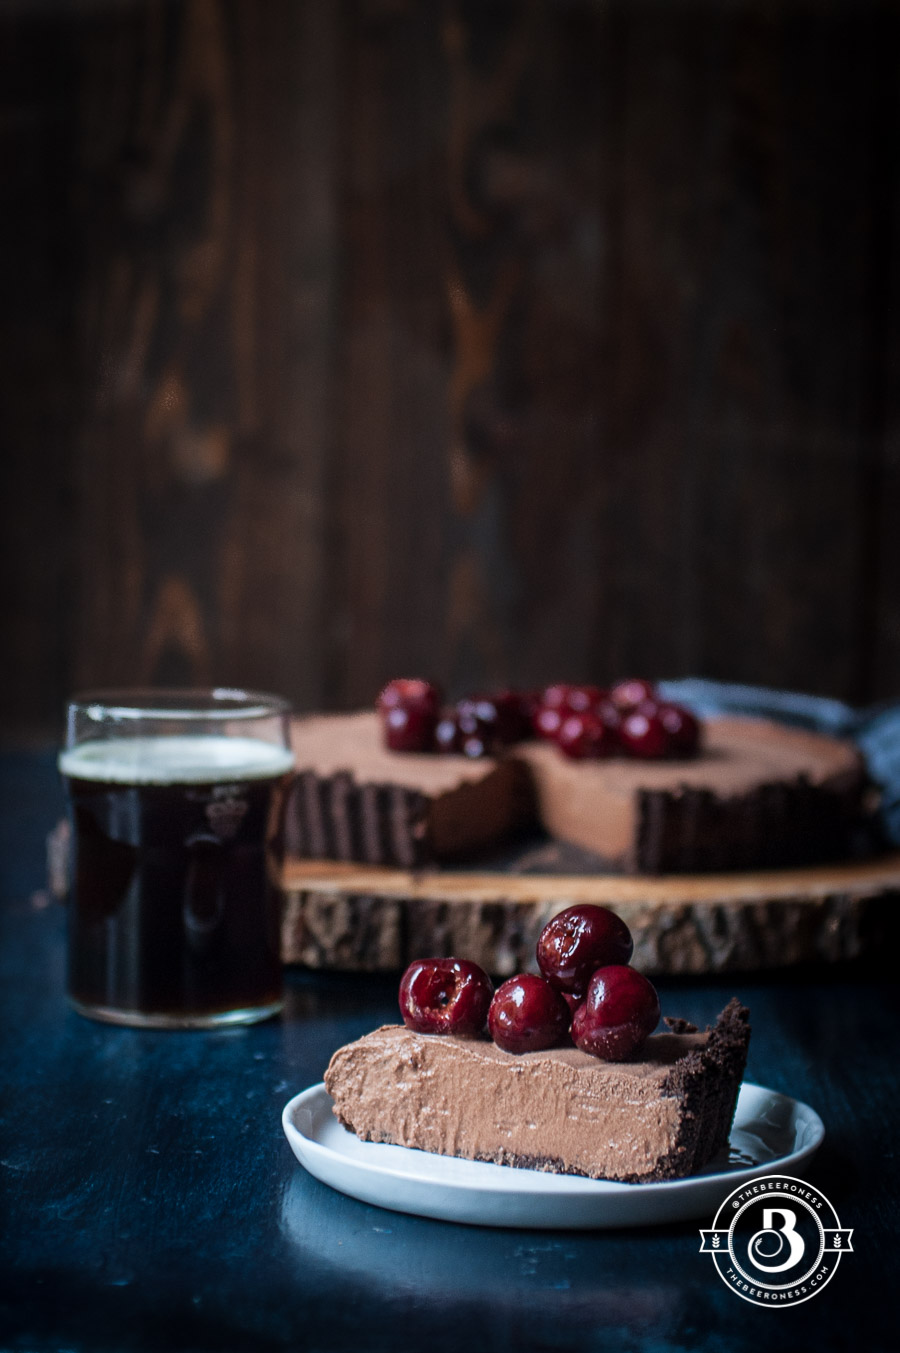 Chocolate Stout Mousse Tart with Bourbon Stout Cherries. Just a few ingredients and 20 minutes! So good, and so easy!